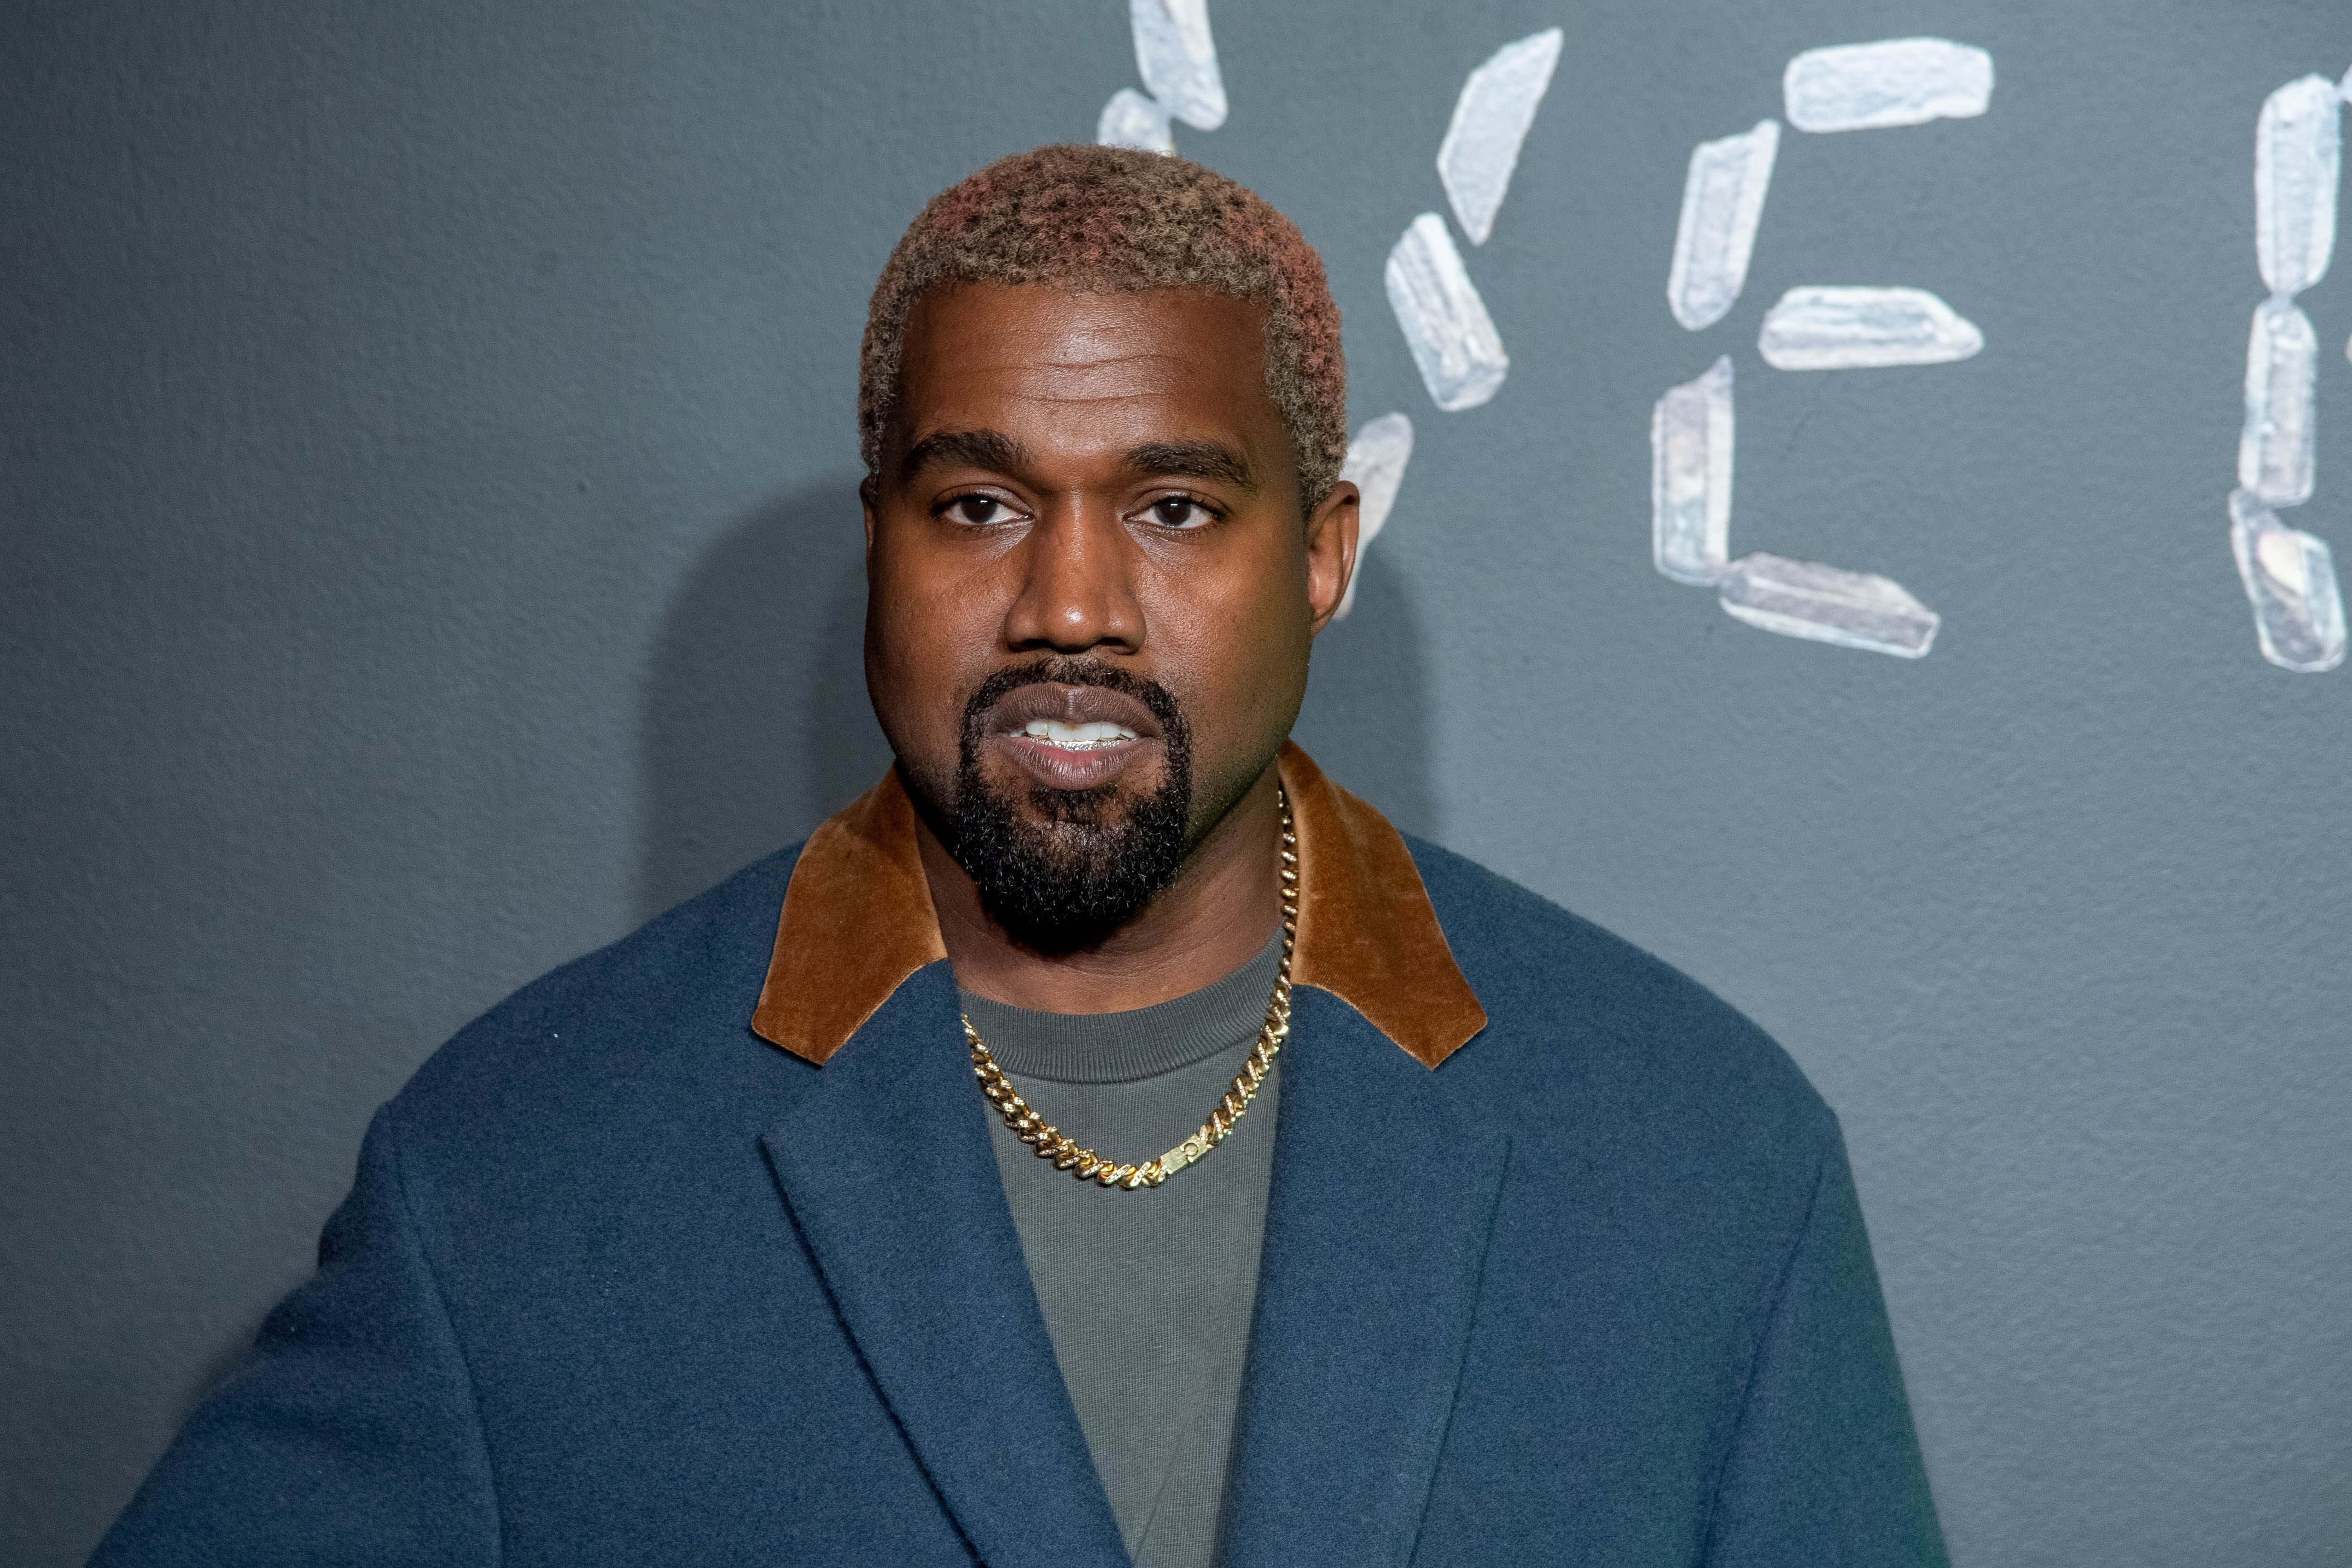 Kanye West atthe Versace fall fashion show at the American Stock Exchange Building in lower Manhattan on December 2, 2018, in New York City   Photo:Roy Rochlin/Getty Images